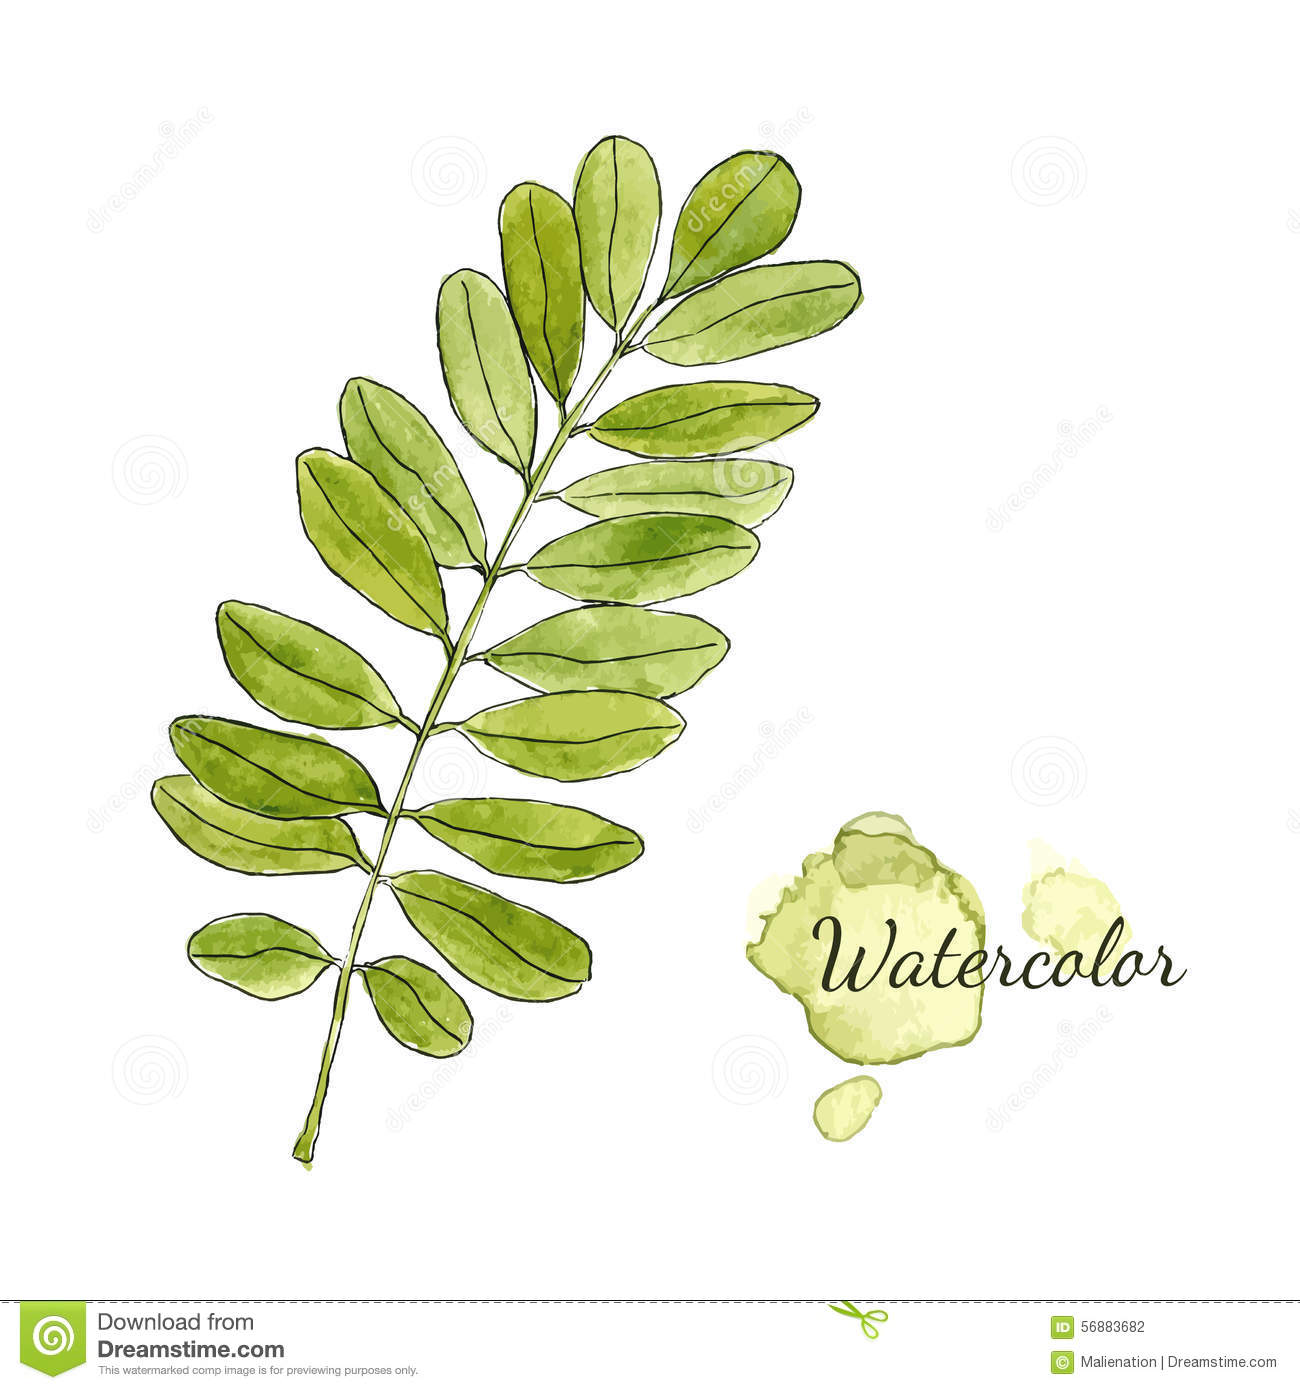 Fall Leaves Watercolor Wallpaper Watercolor Green Acacia Branch With Leaves Isolated Hand